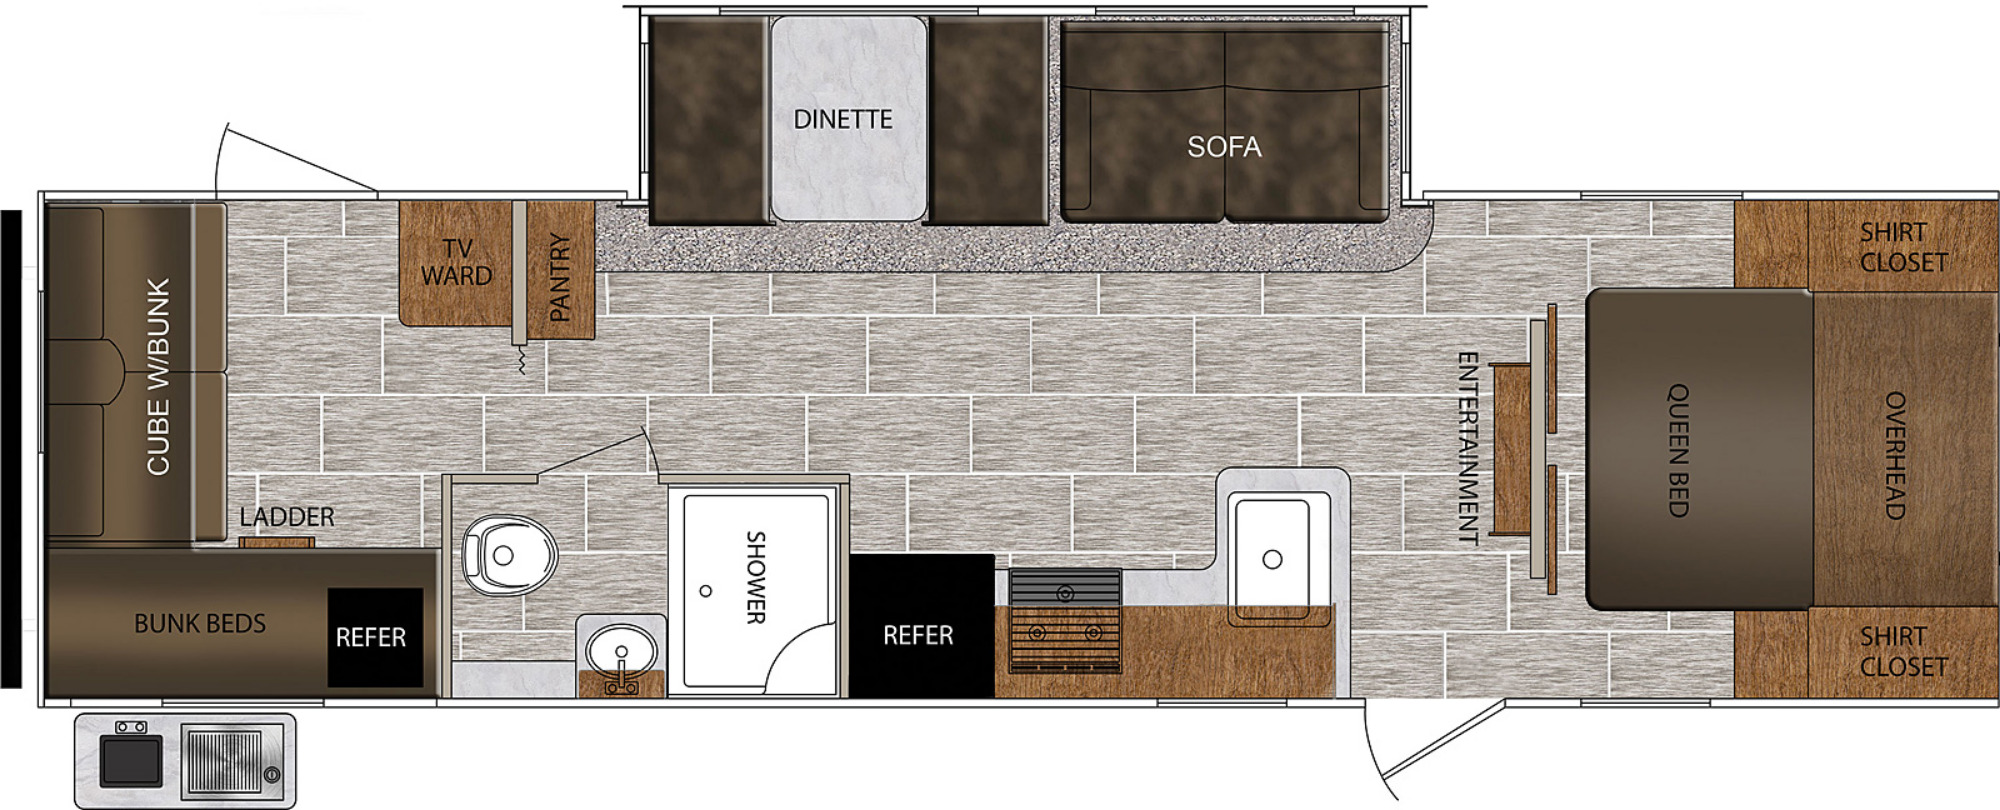 View Floor Plan for 2021 PRIME TIME TRACER 29QBD